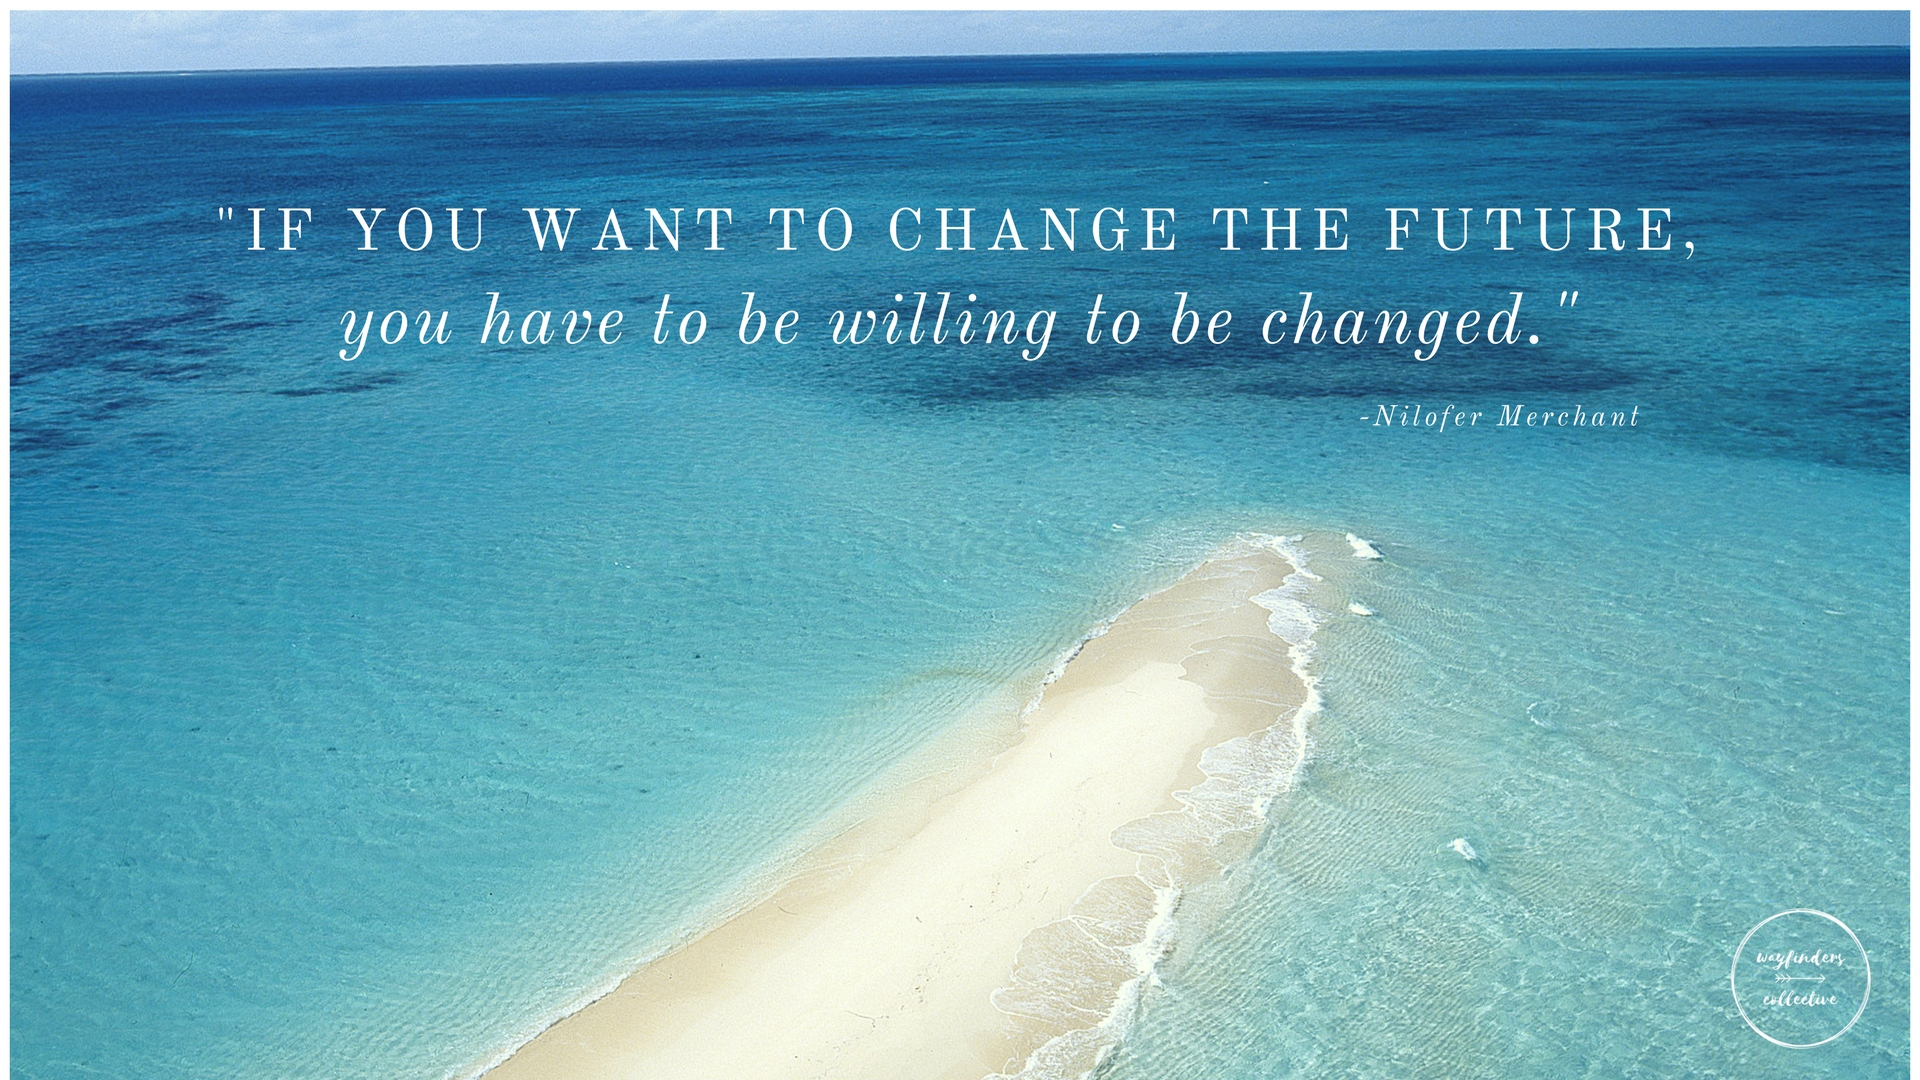 If you want to change the future, you have to be willing to be changed.jpg